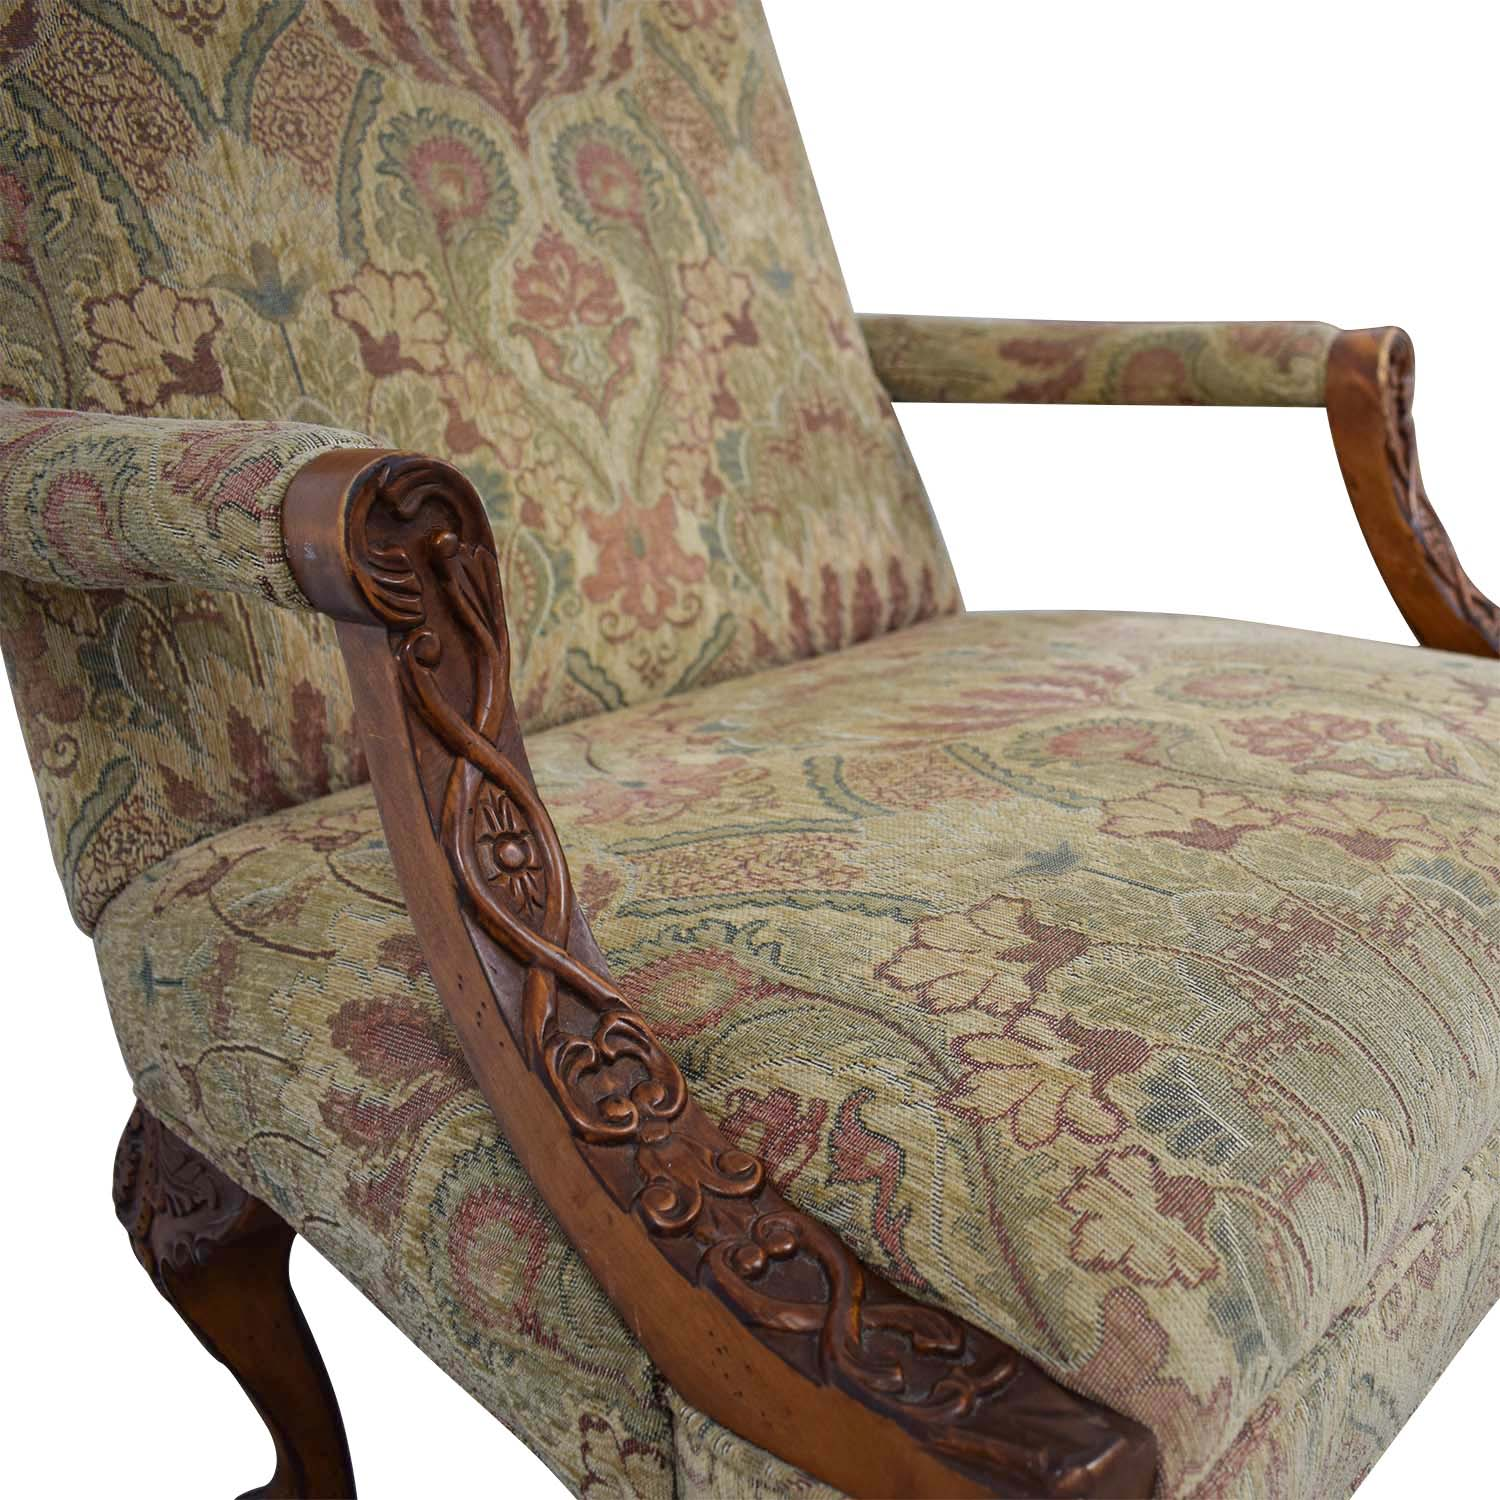 Wood Club Chair 80 Off Sam Moore Sam Moore Tibetan Tapestry Old World Finish Carved Wood Chairs Chairs